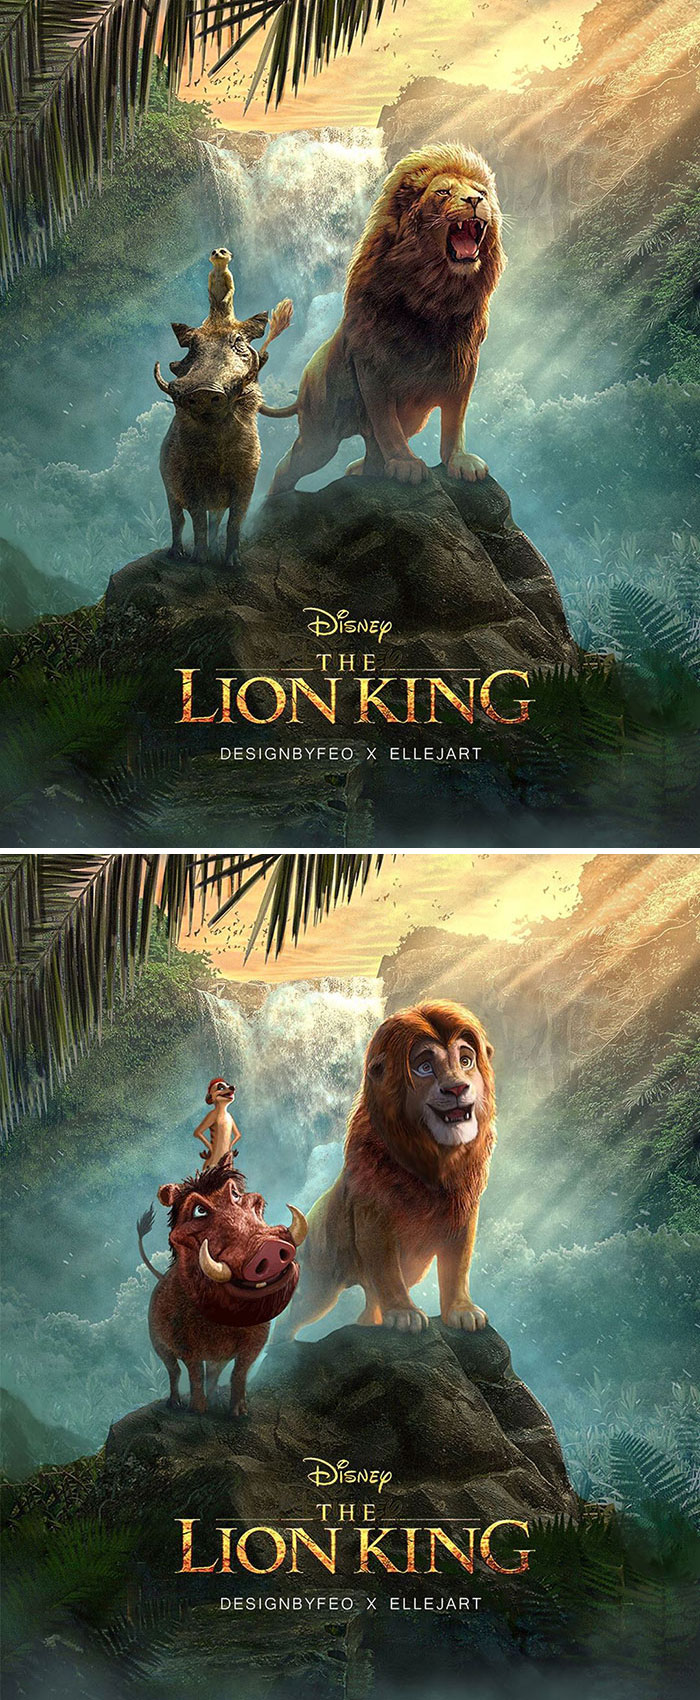 5d38074adb164-lion-king-live-action-fan-remake-nikolay-mochkin-5d36c0935324f__700